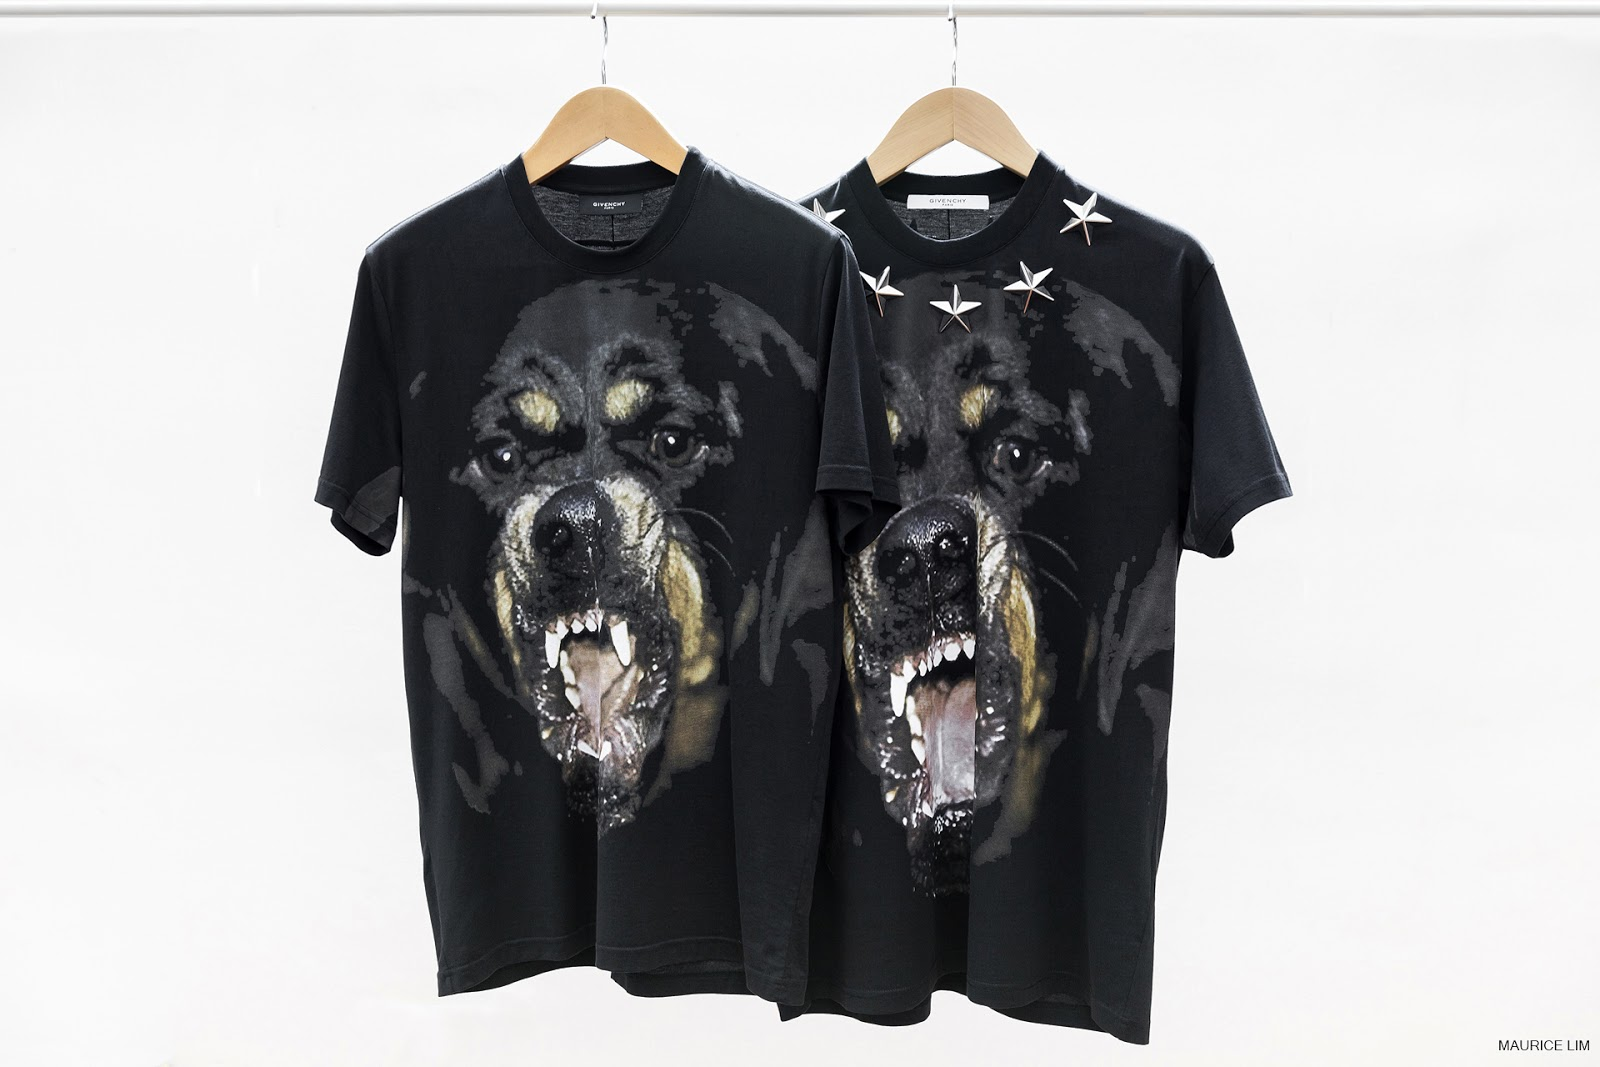 71f84a3d587bd Givenchy Rottweiler Star Appliqué Print Columbian-Fit T-Shirt ...